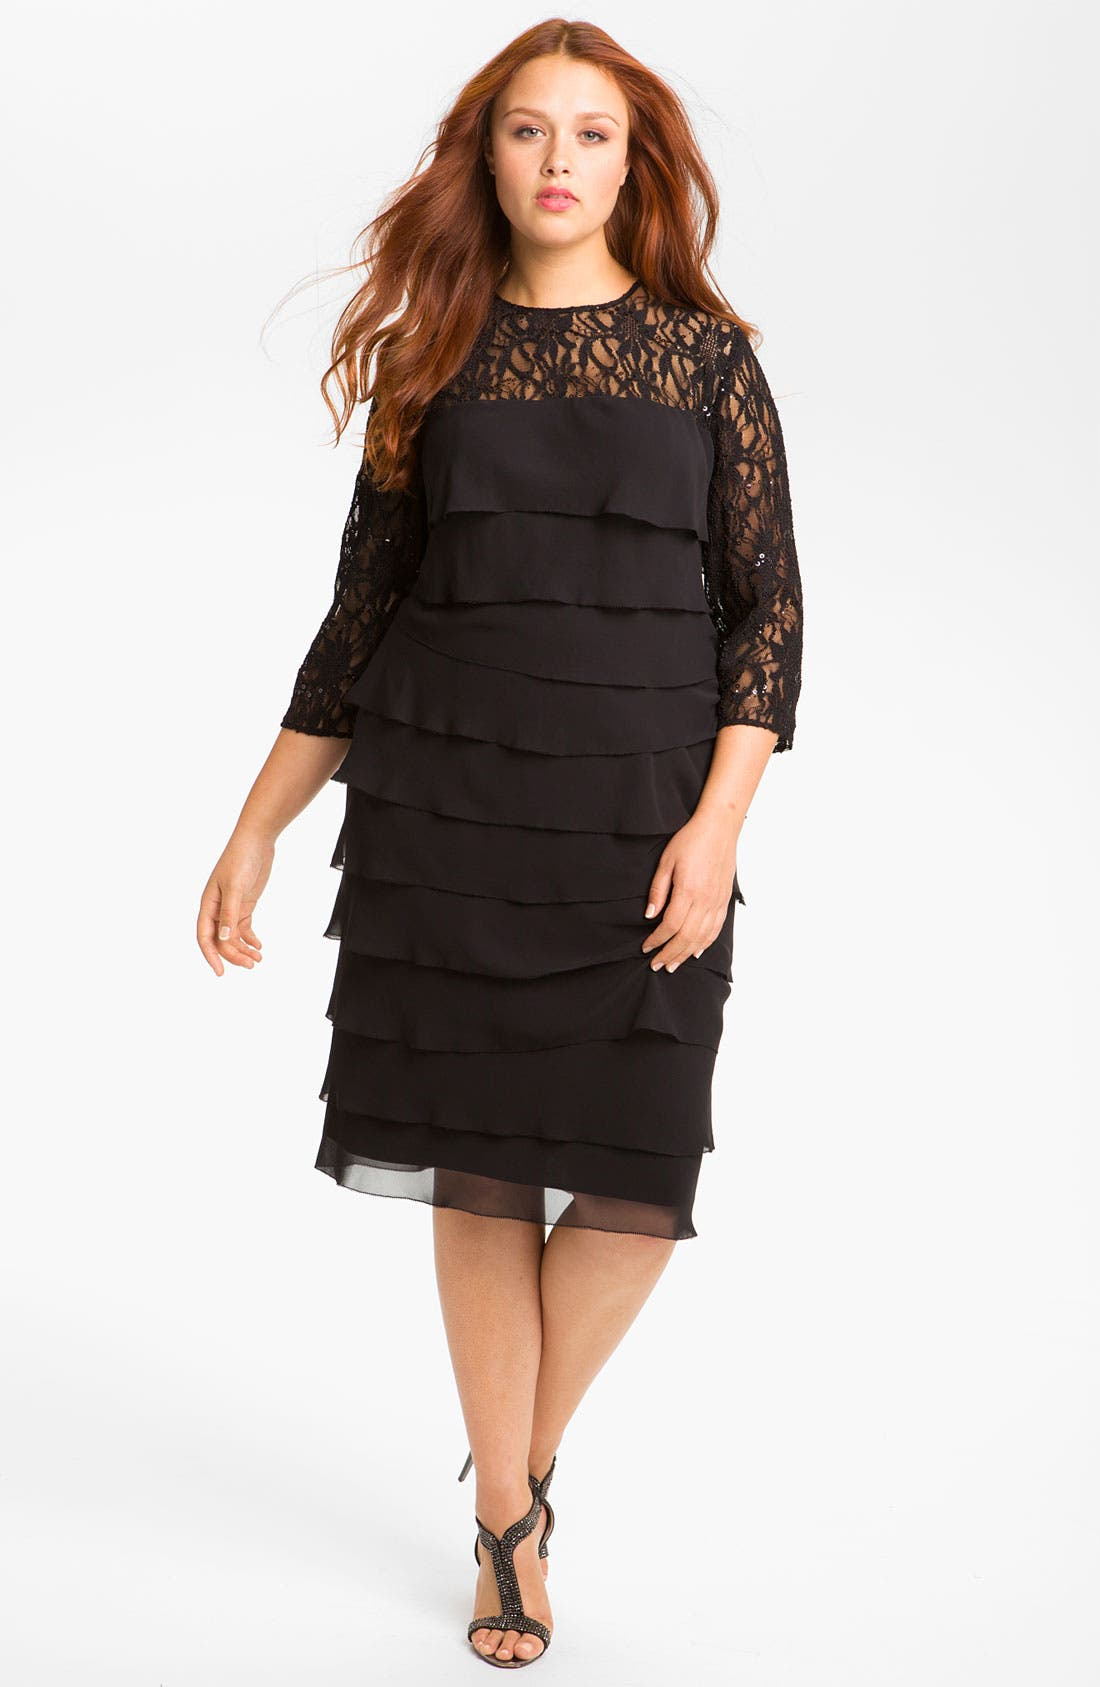 Alternate Image 1 Selected - Alex Evenings Lace & Chiffon Shift Dress (Plus)